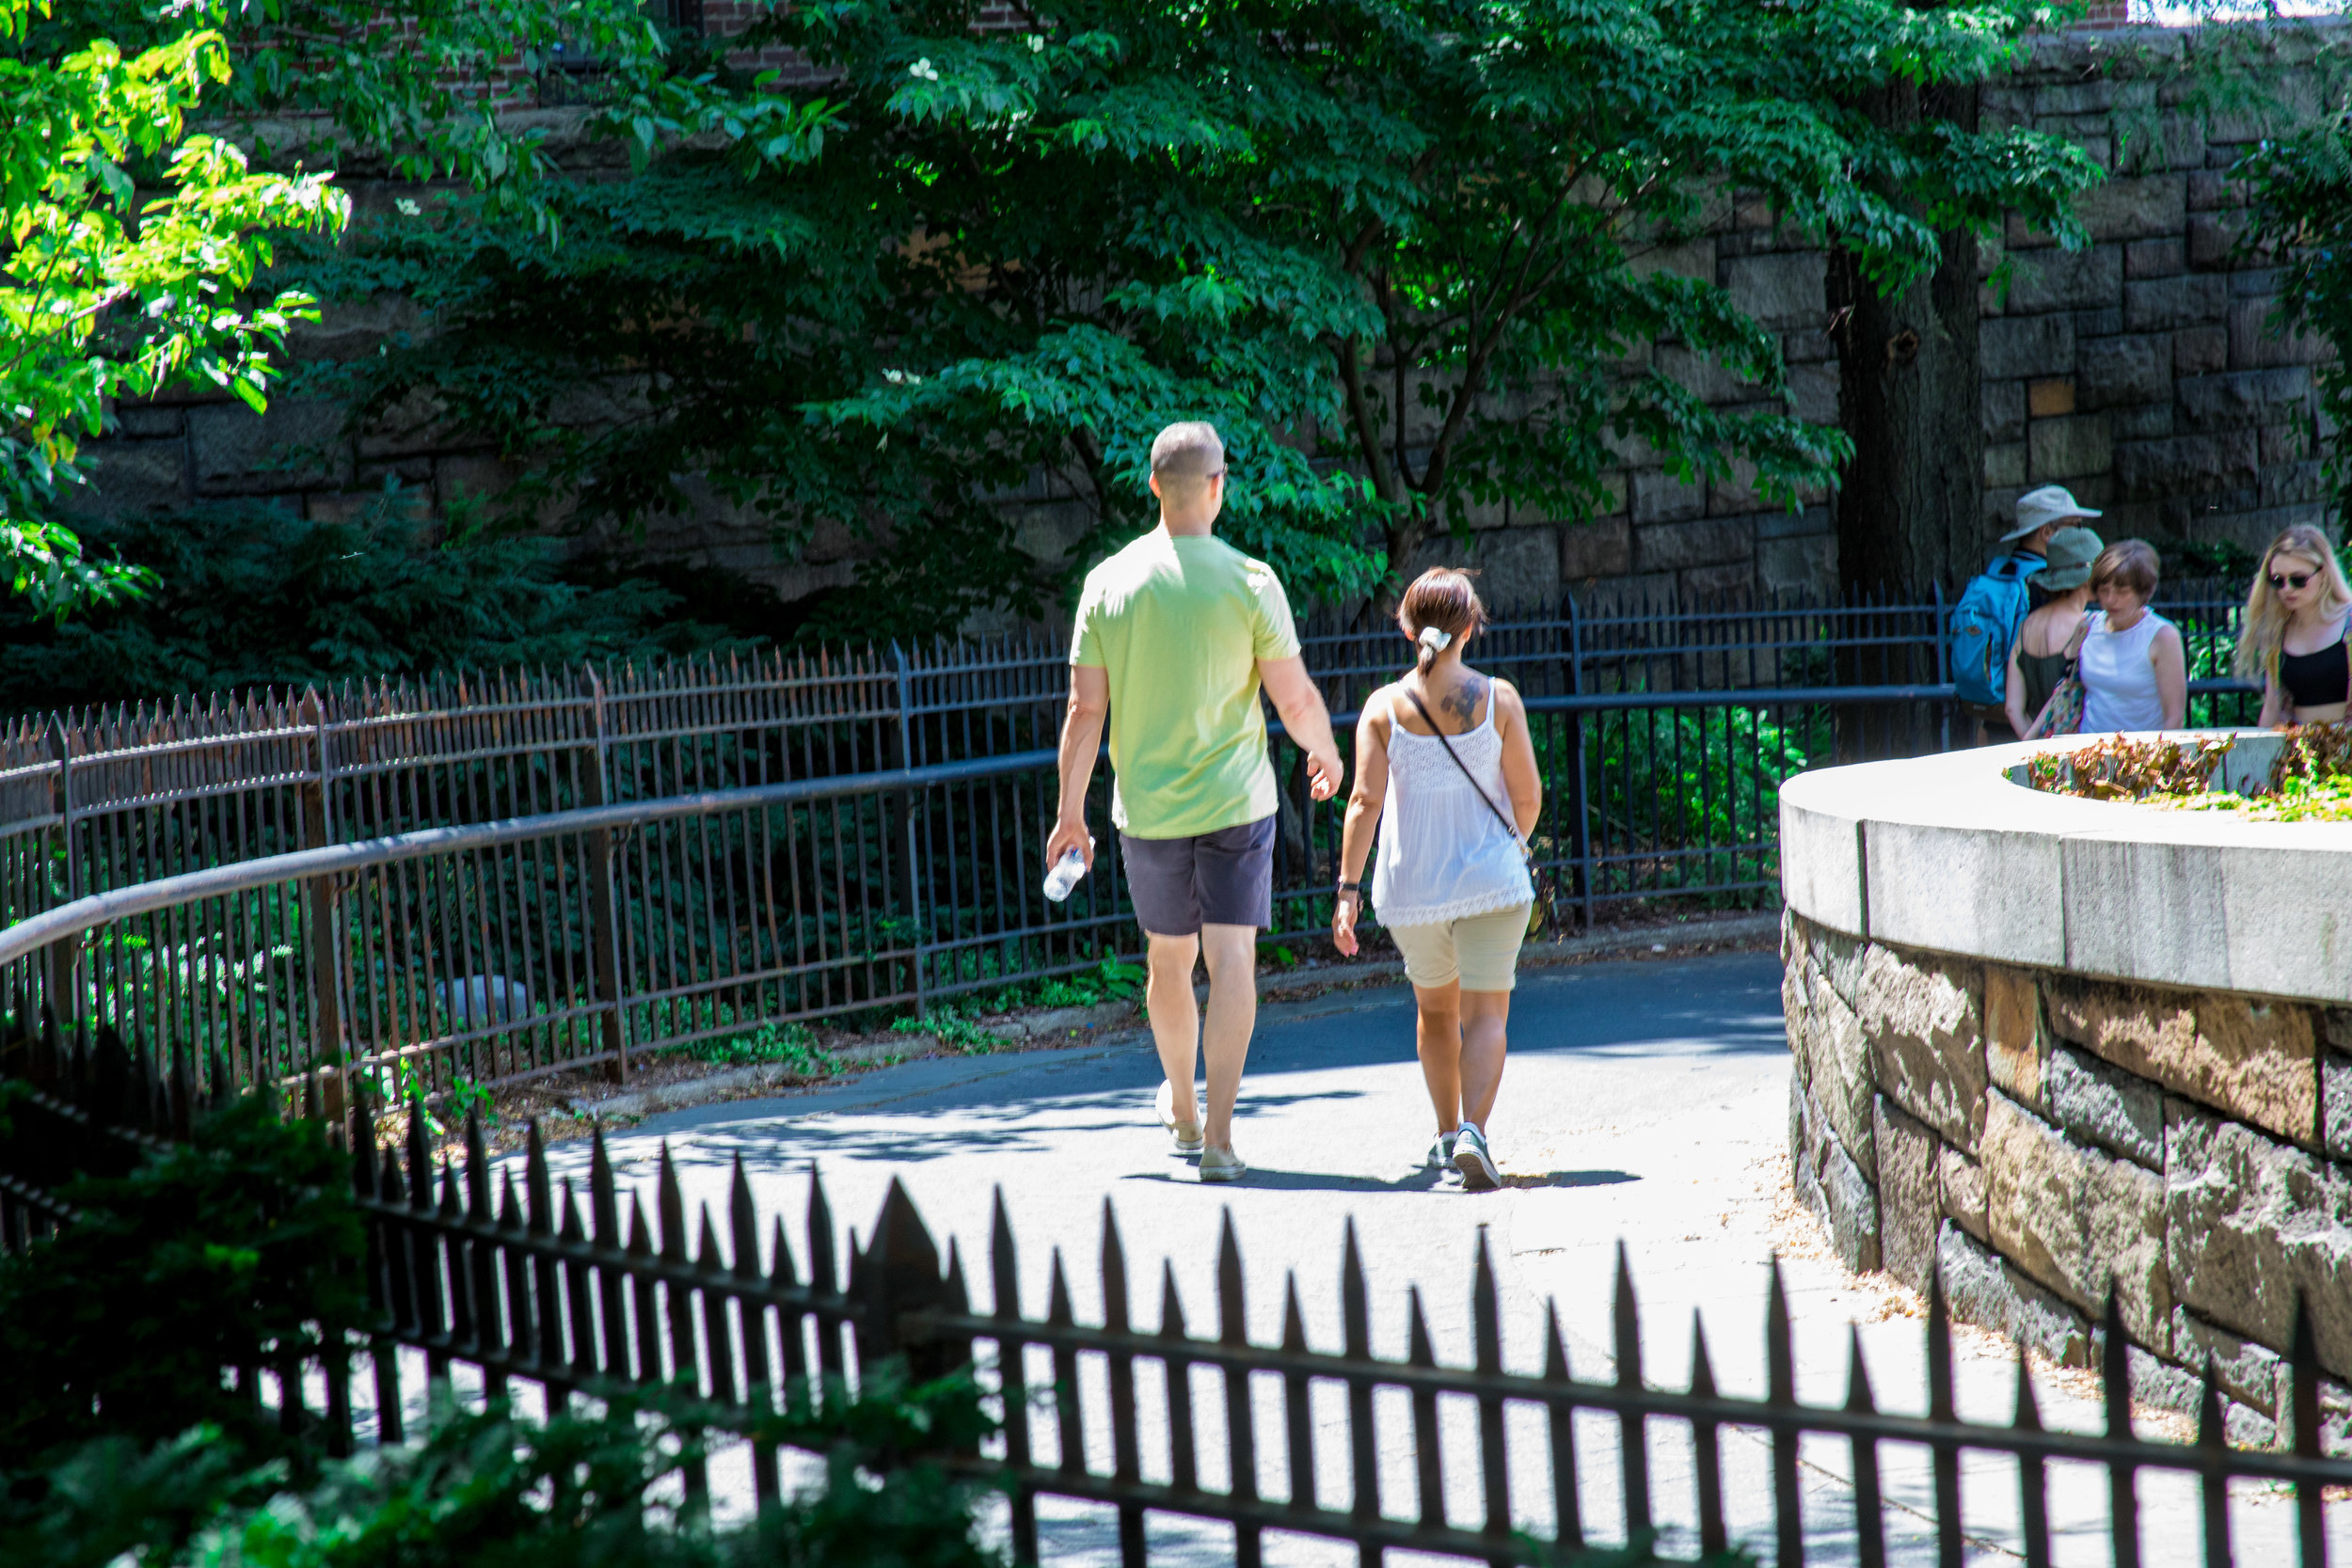 LSNY_Brooklyn-Heights-13.jpg